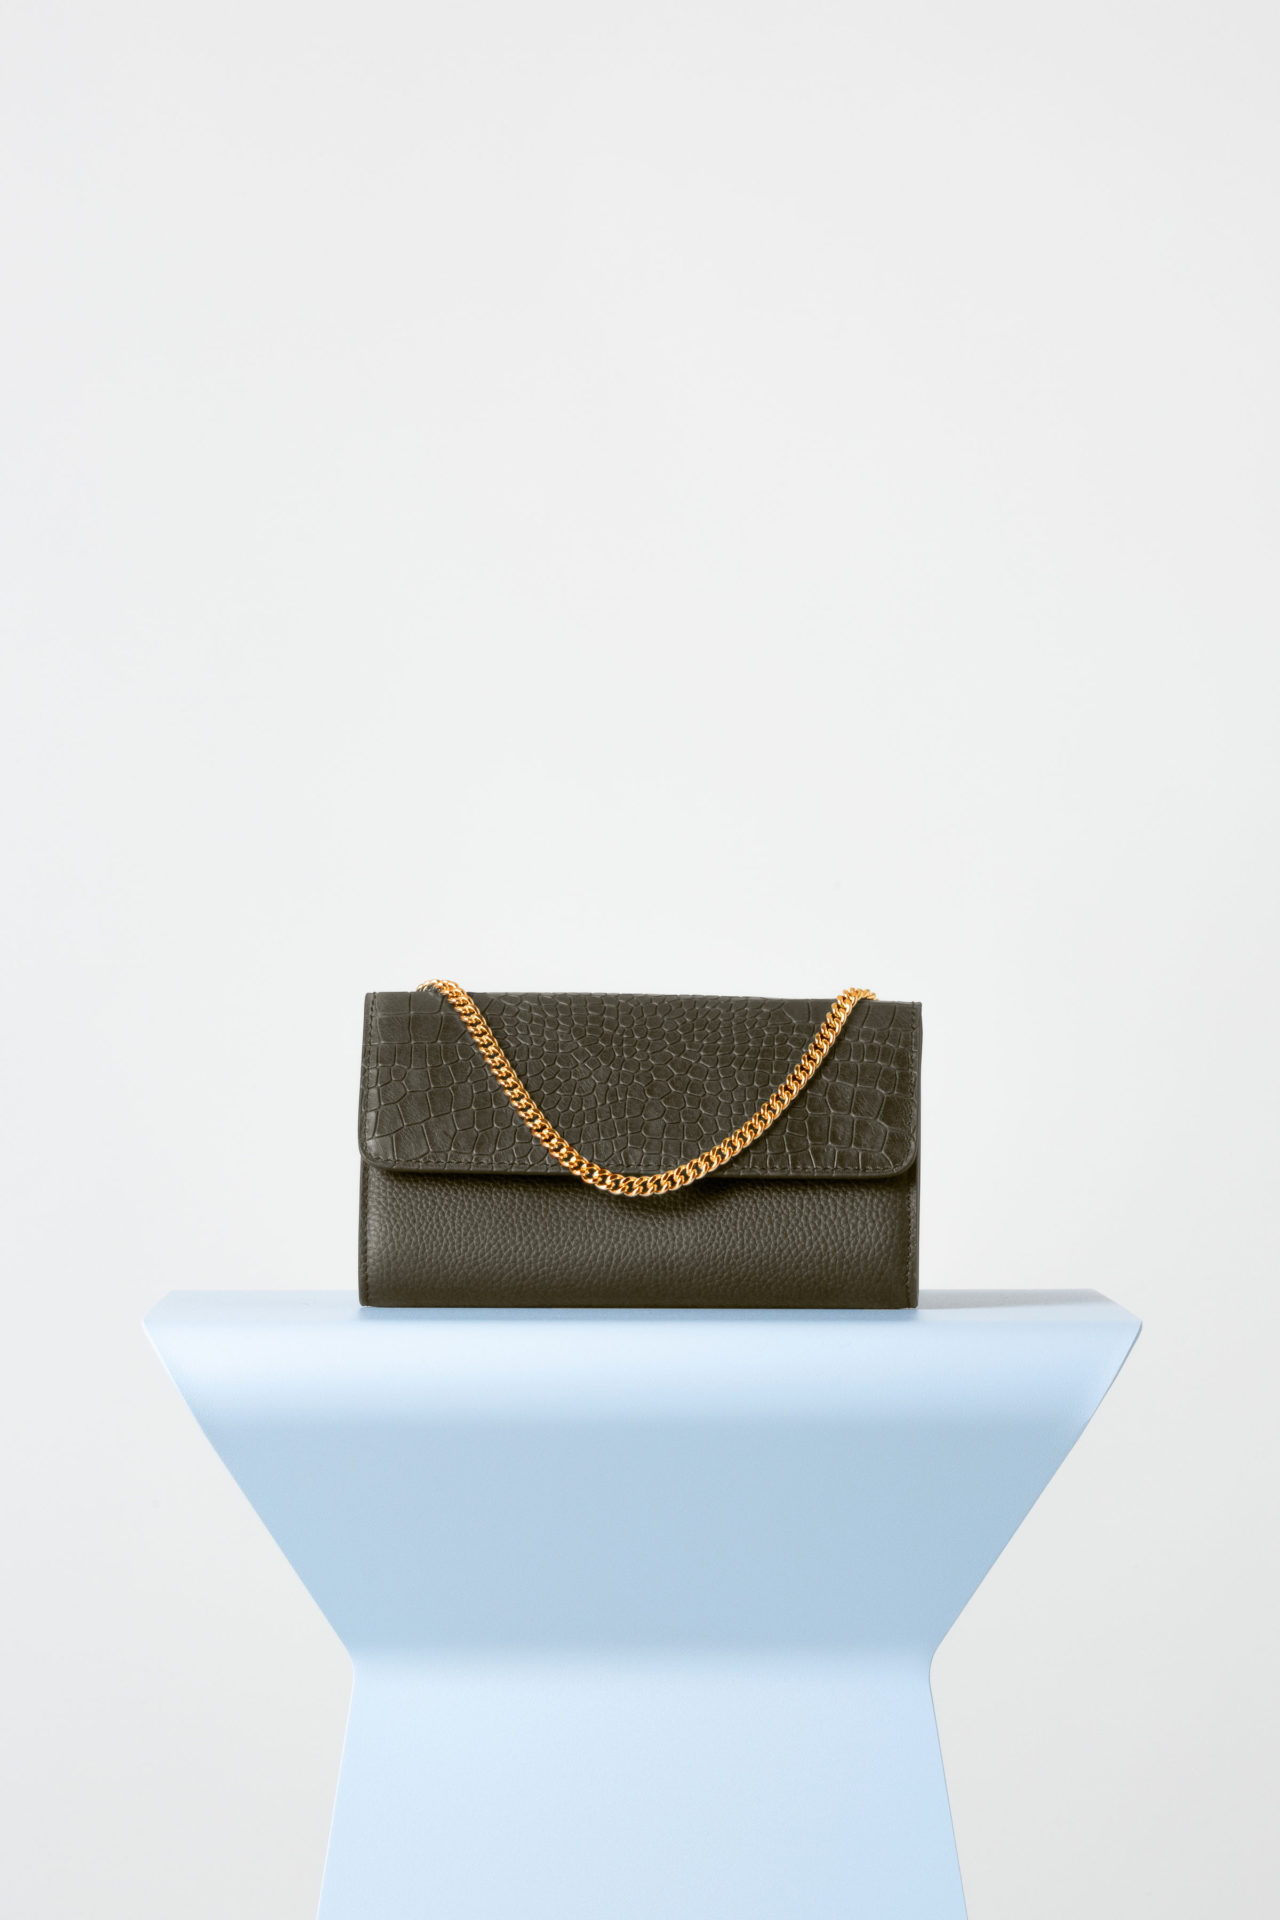 Frankie Evening Bag In Military Green Croc